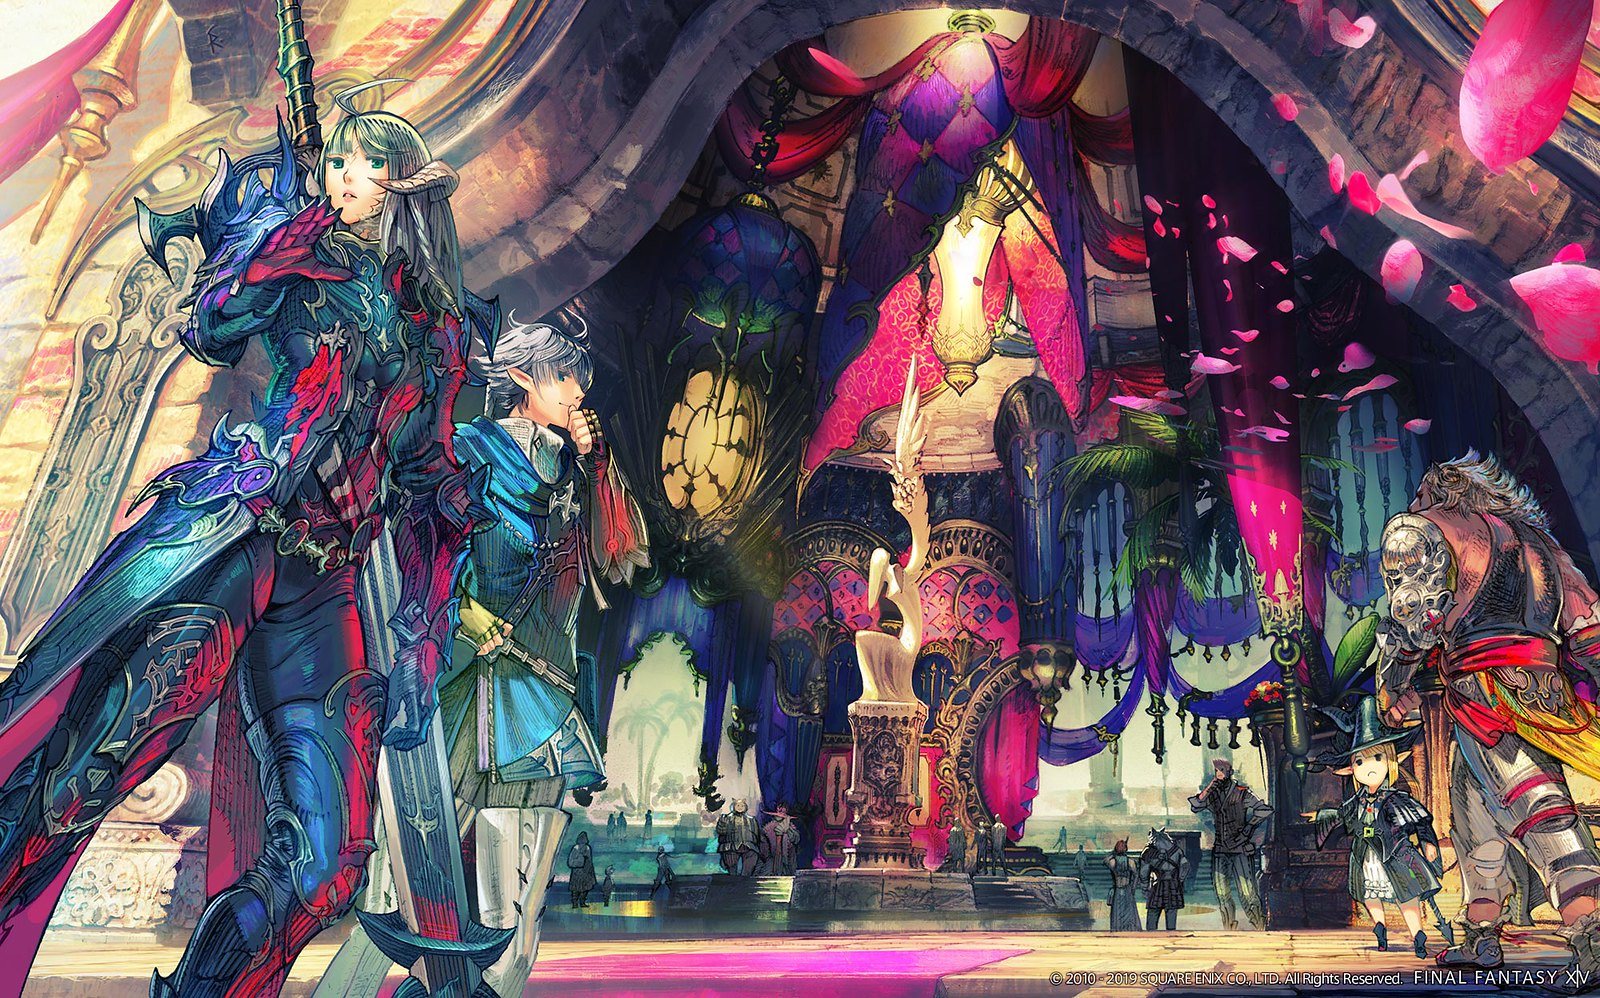 Editors' Choice: FFXIV Shadowbringers Takes the MMO to New